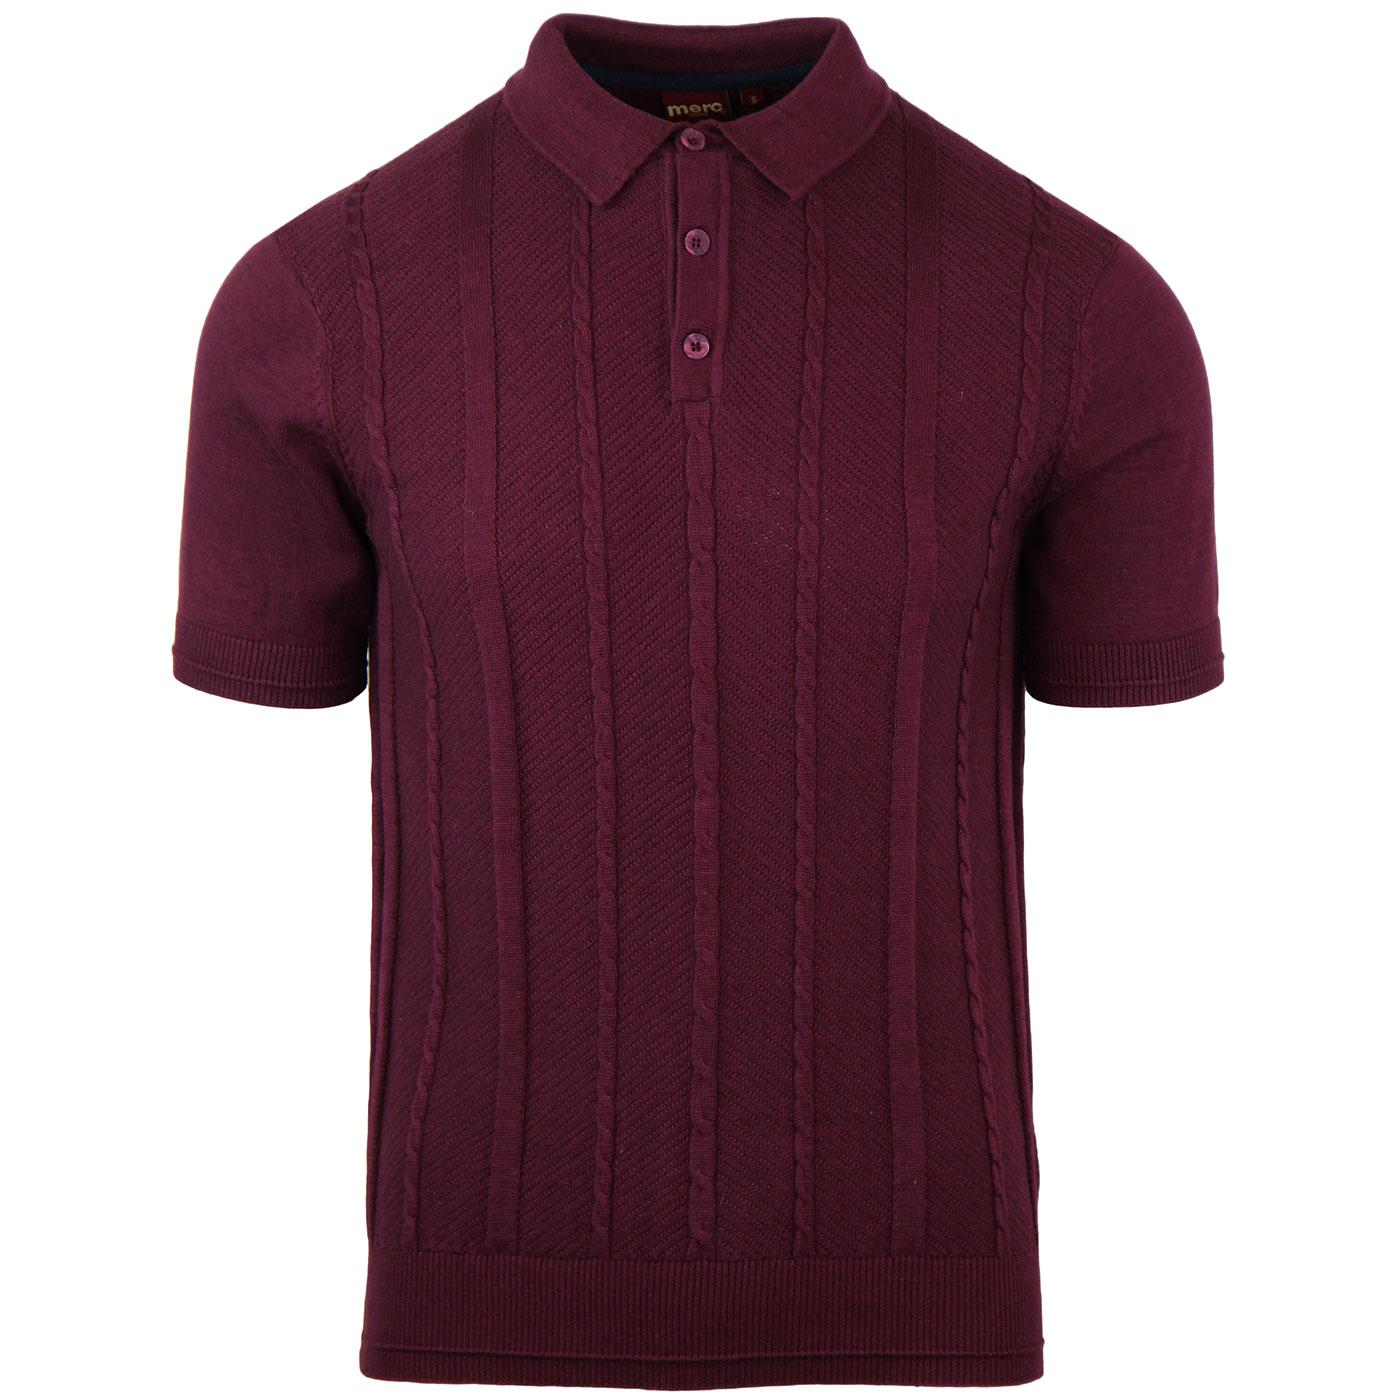 Frith MERC Retro Mod Cable Knit Polo Top (Wine)